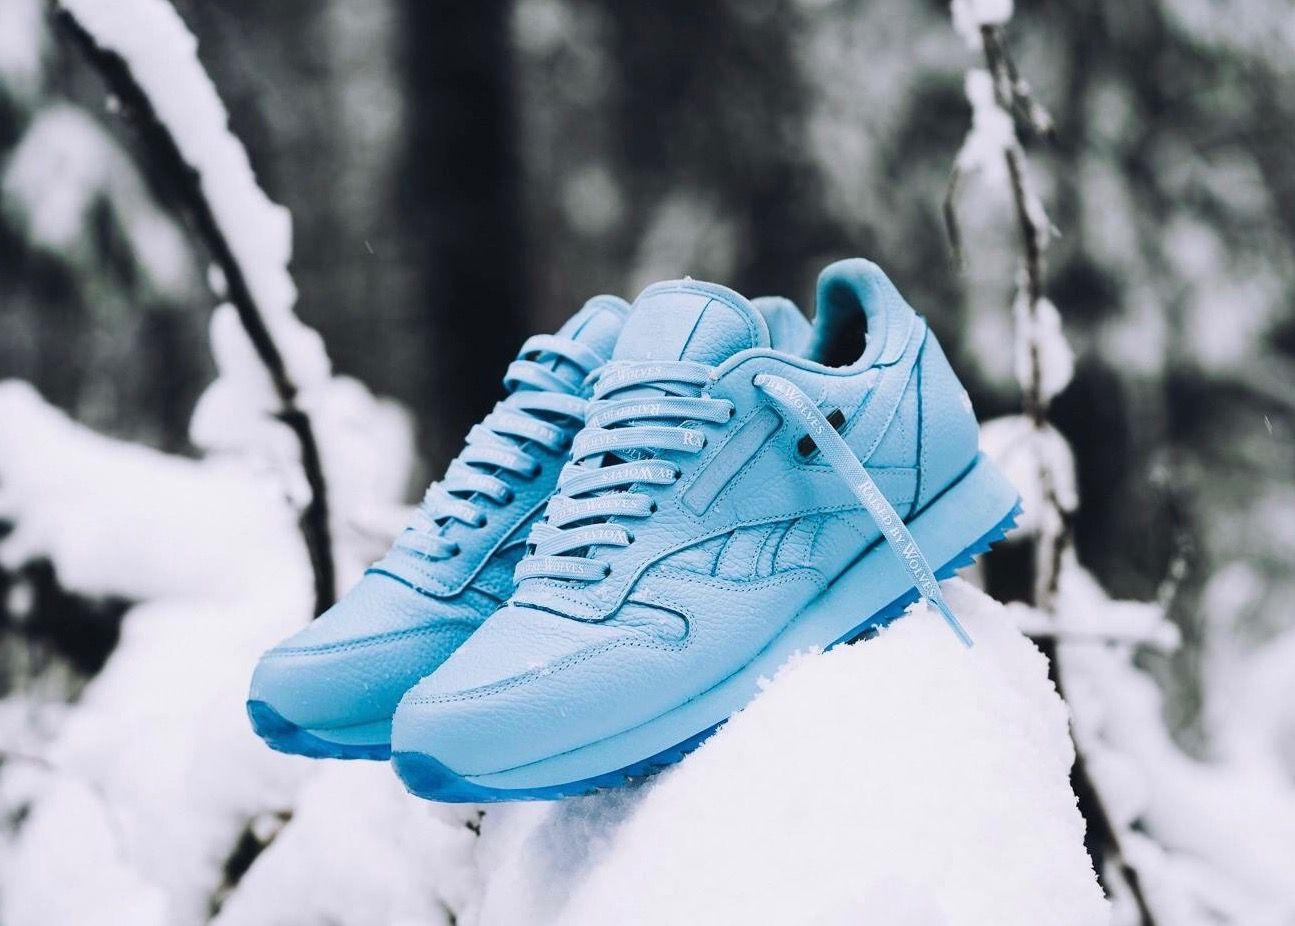 hot sale online discount sale big discount Raised by Wolves x Reebok Classic Leather | Classic leather ...